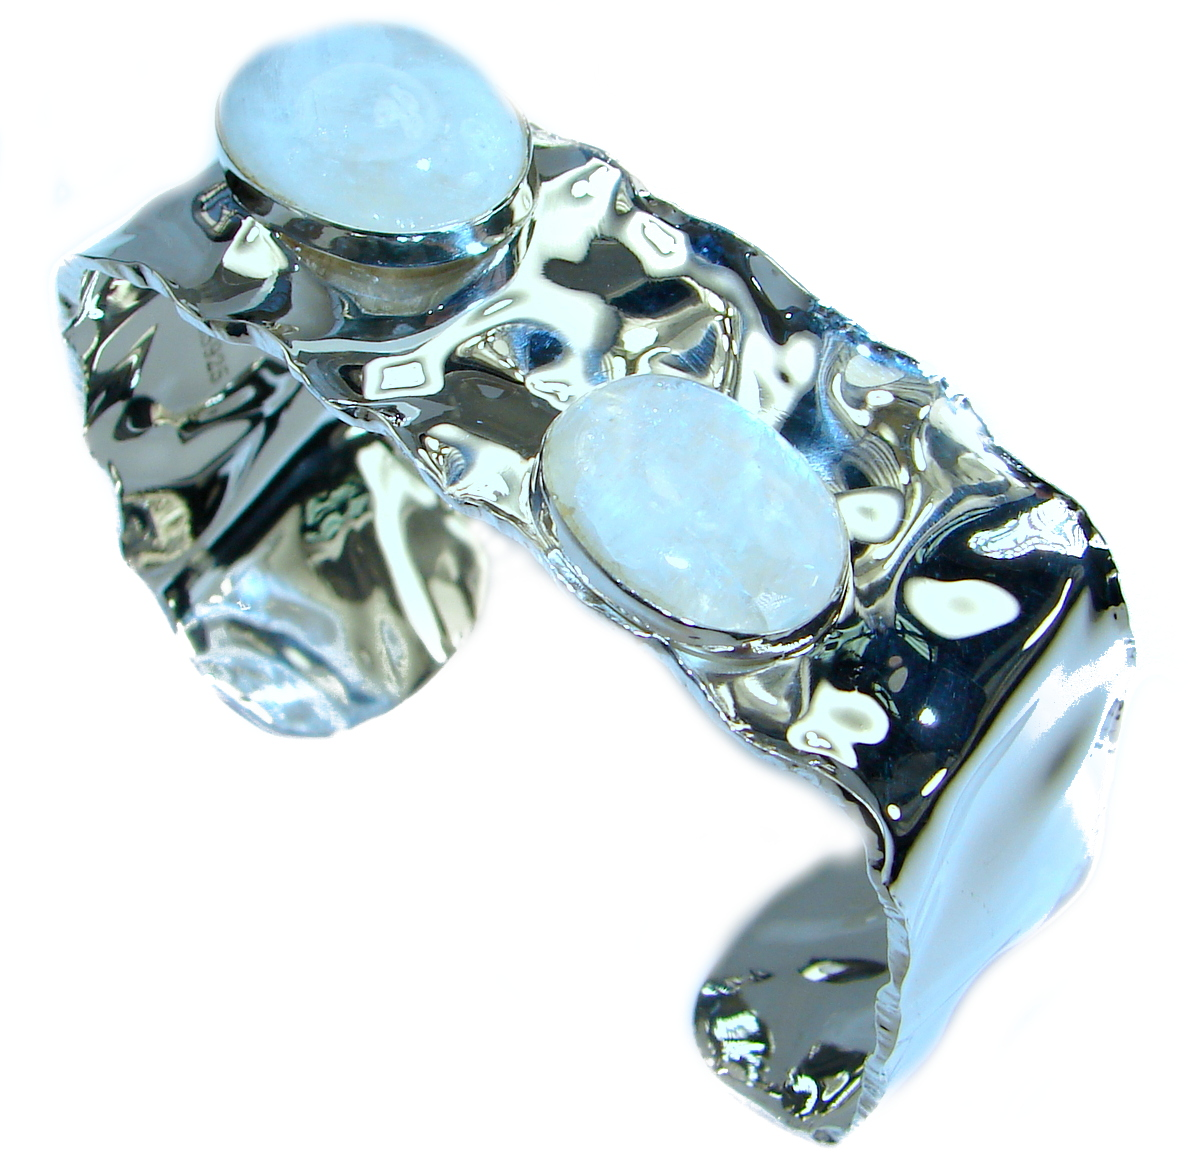 Real Treasure Fire Moonstone hammered .925 Sterling Silver Bracelet / Cuff